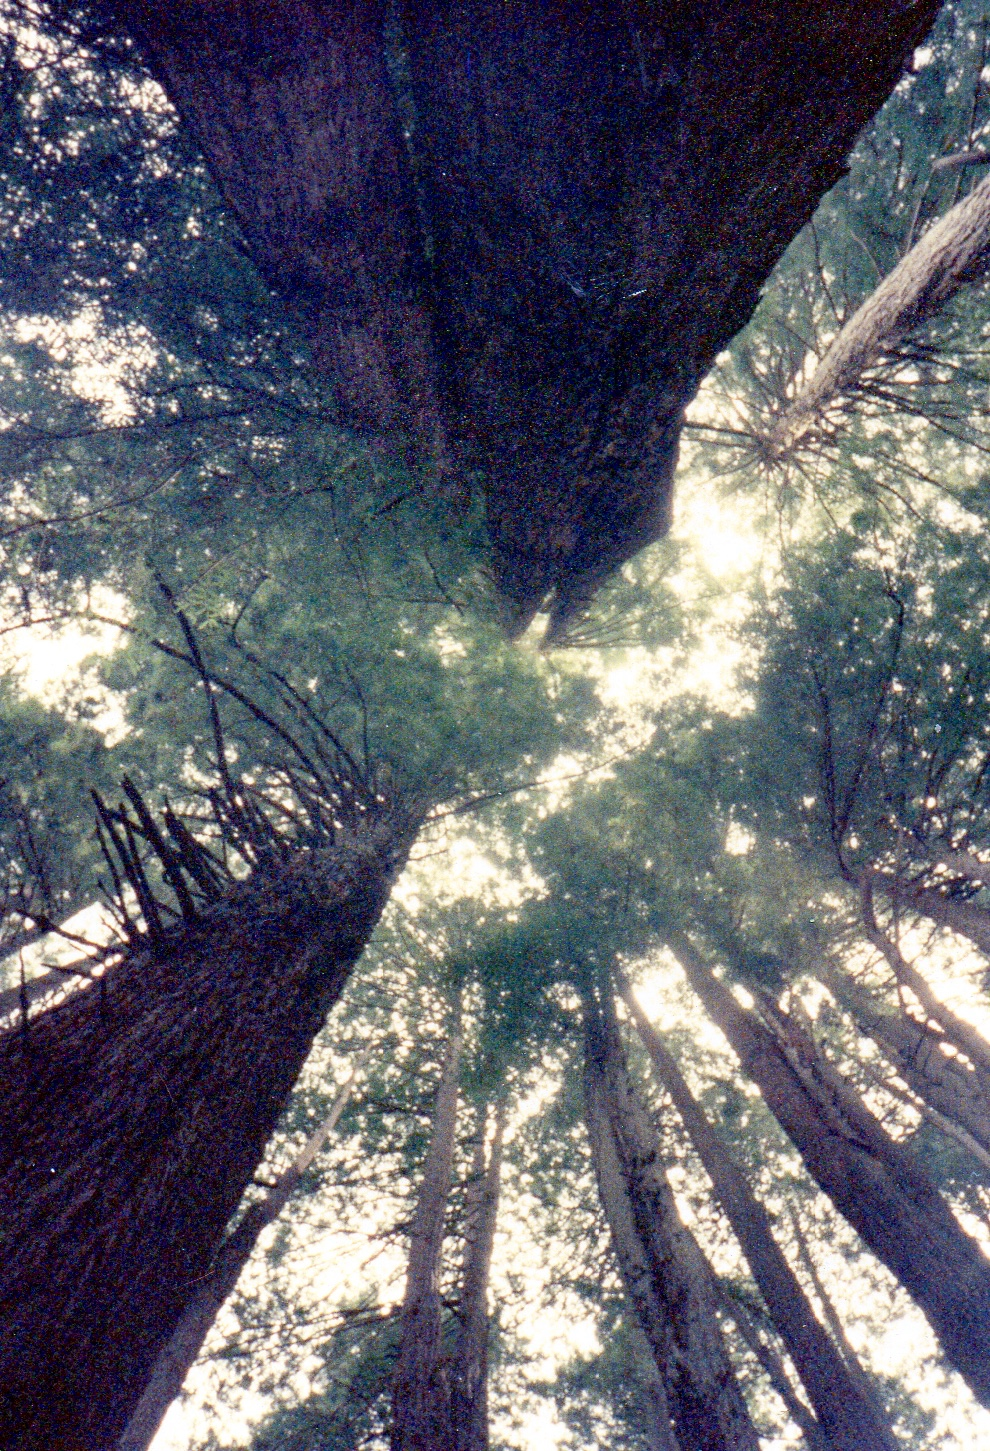 A photo of the redwoods I took in the 90s. It is the inspiration for the painting Redwoods Sky.